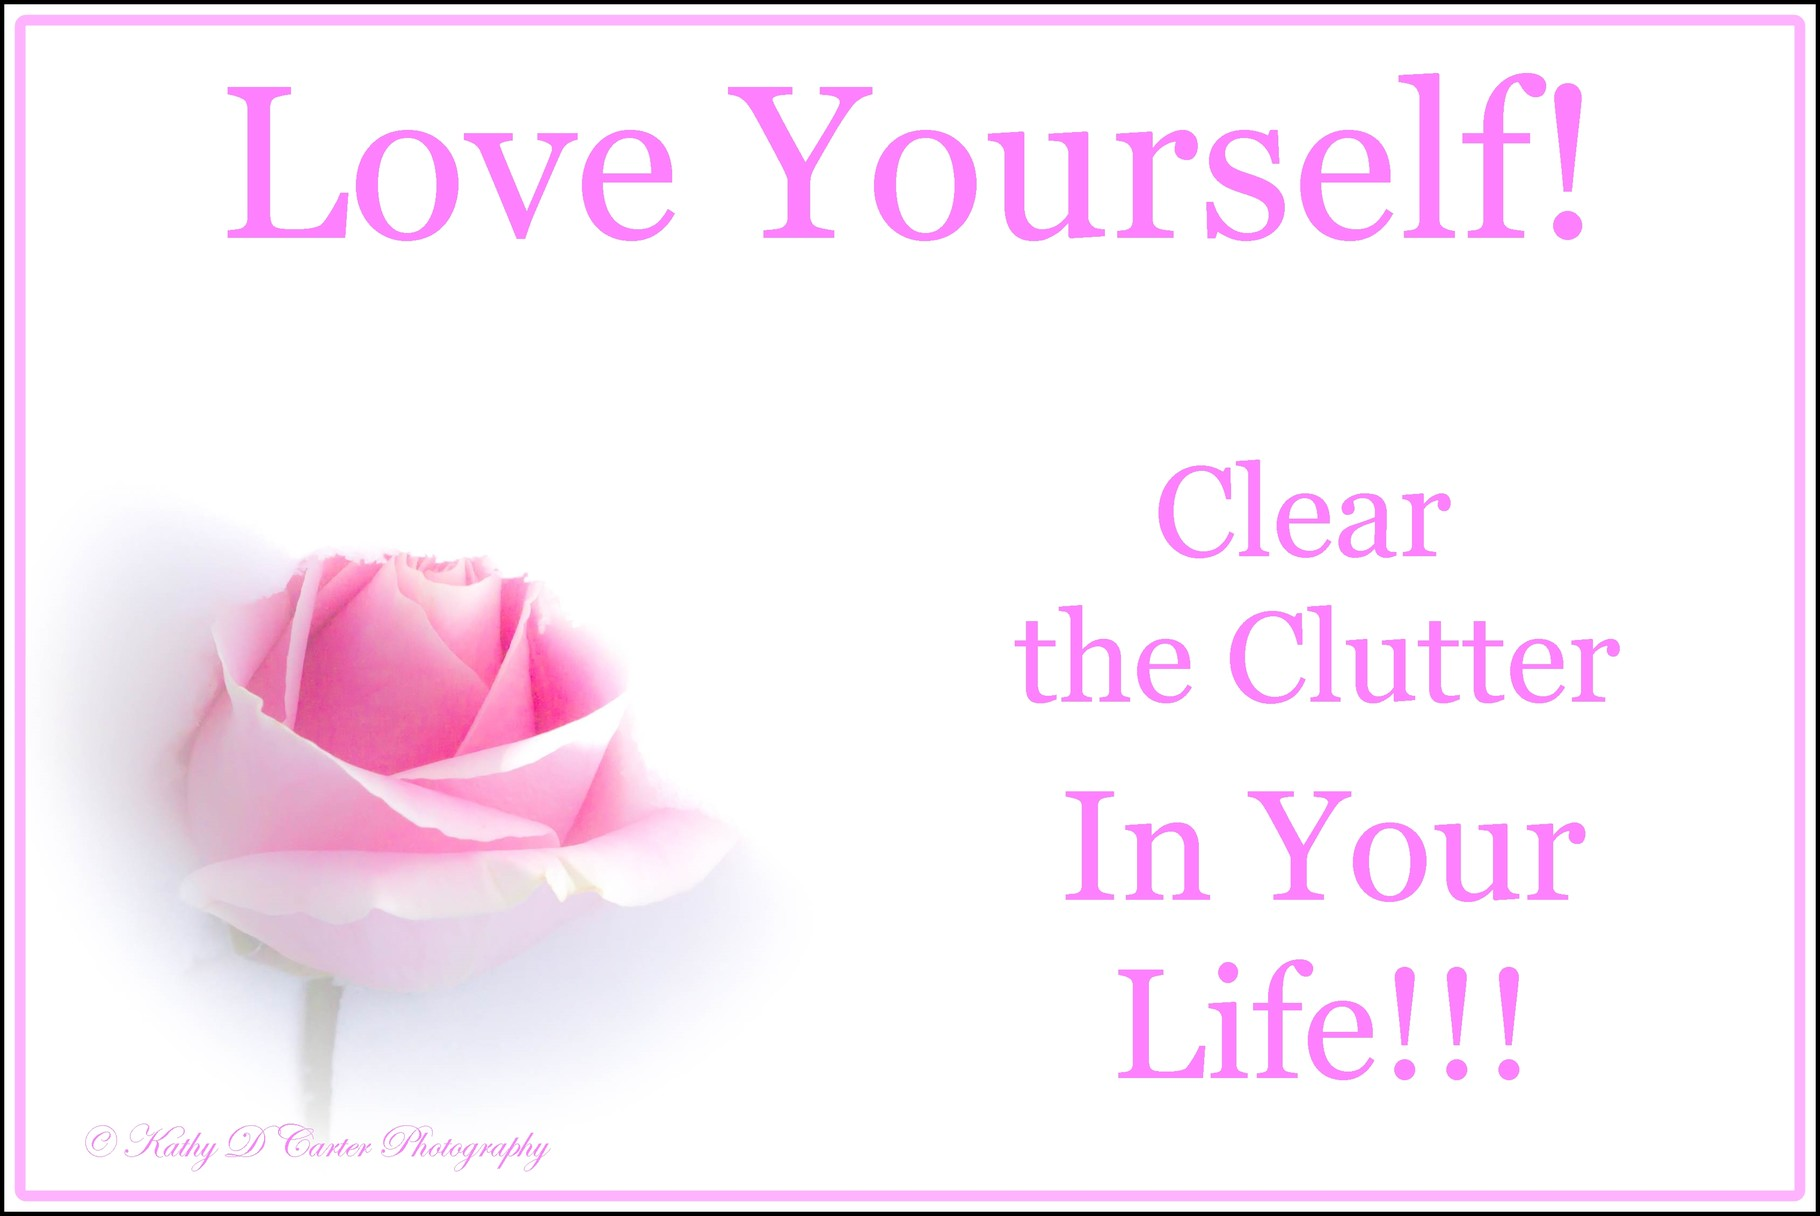 Love Yourself!  Declutter your life!